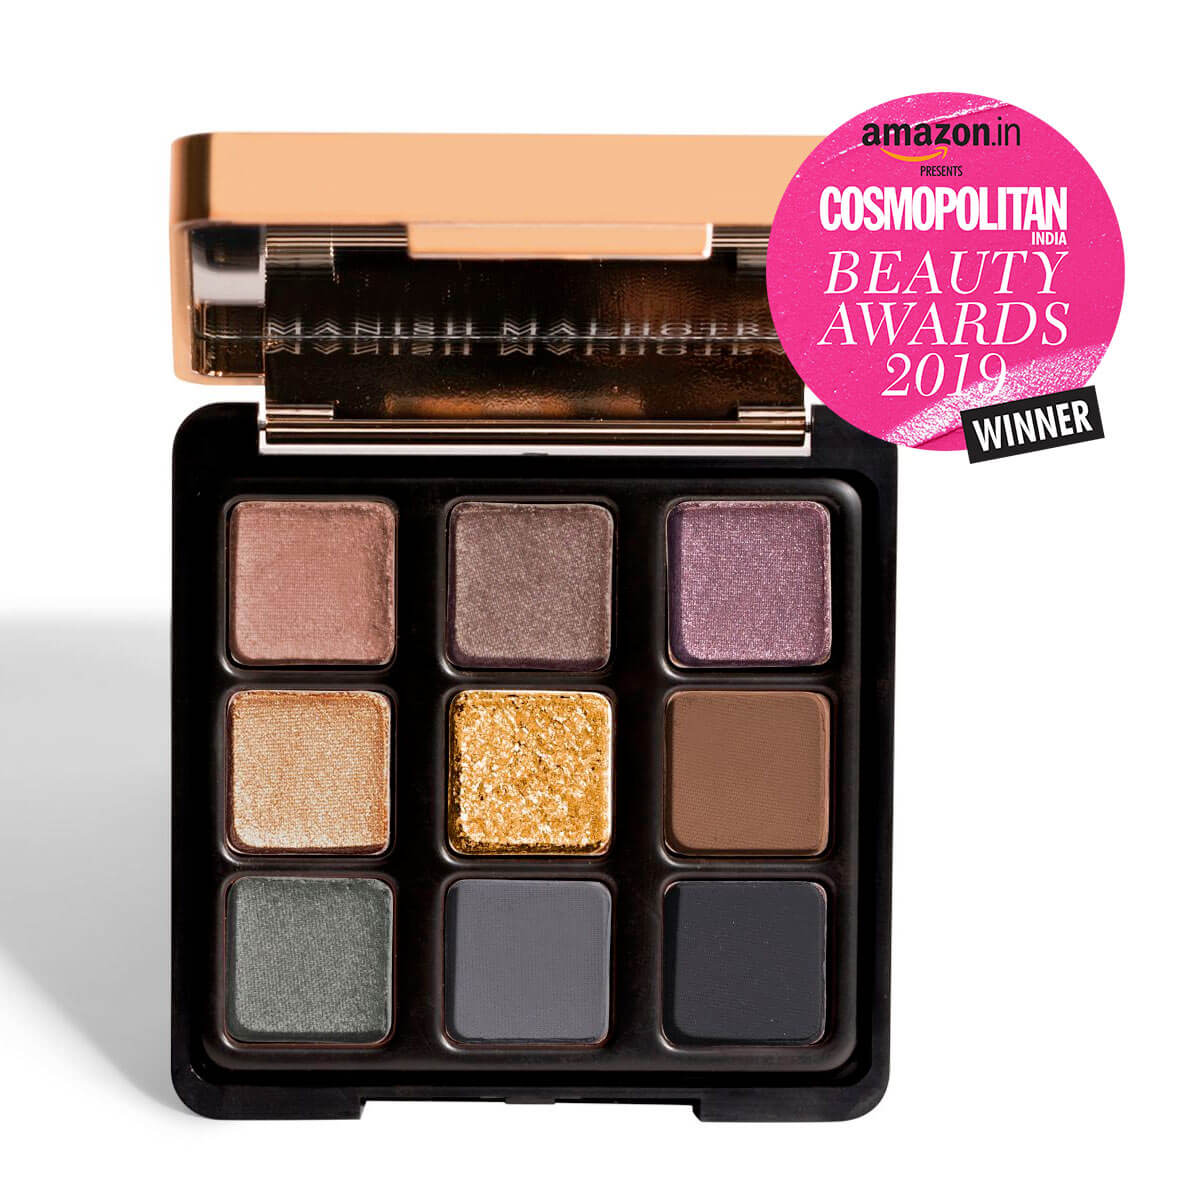 Manish Malhotra 9 in 1 Eyeshadow Palette